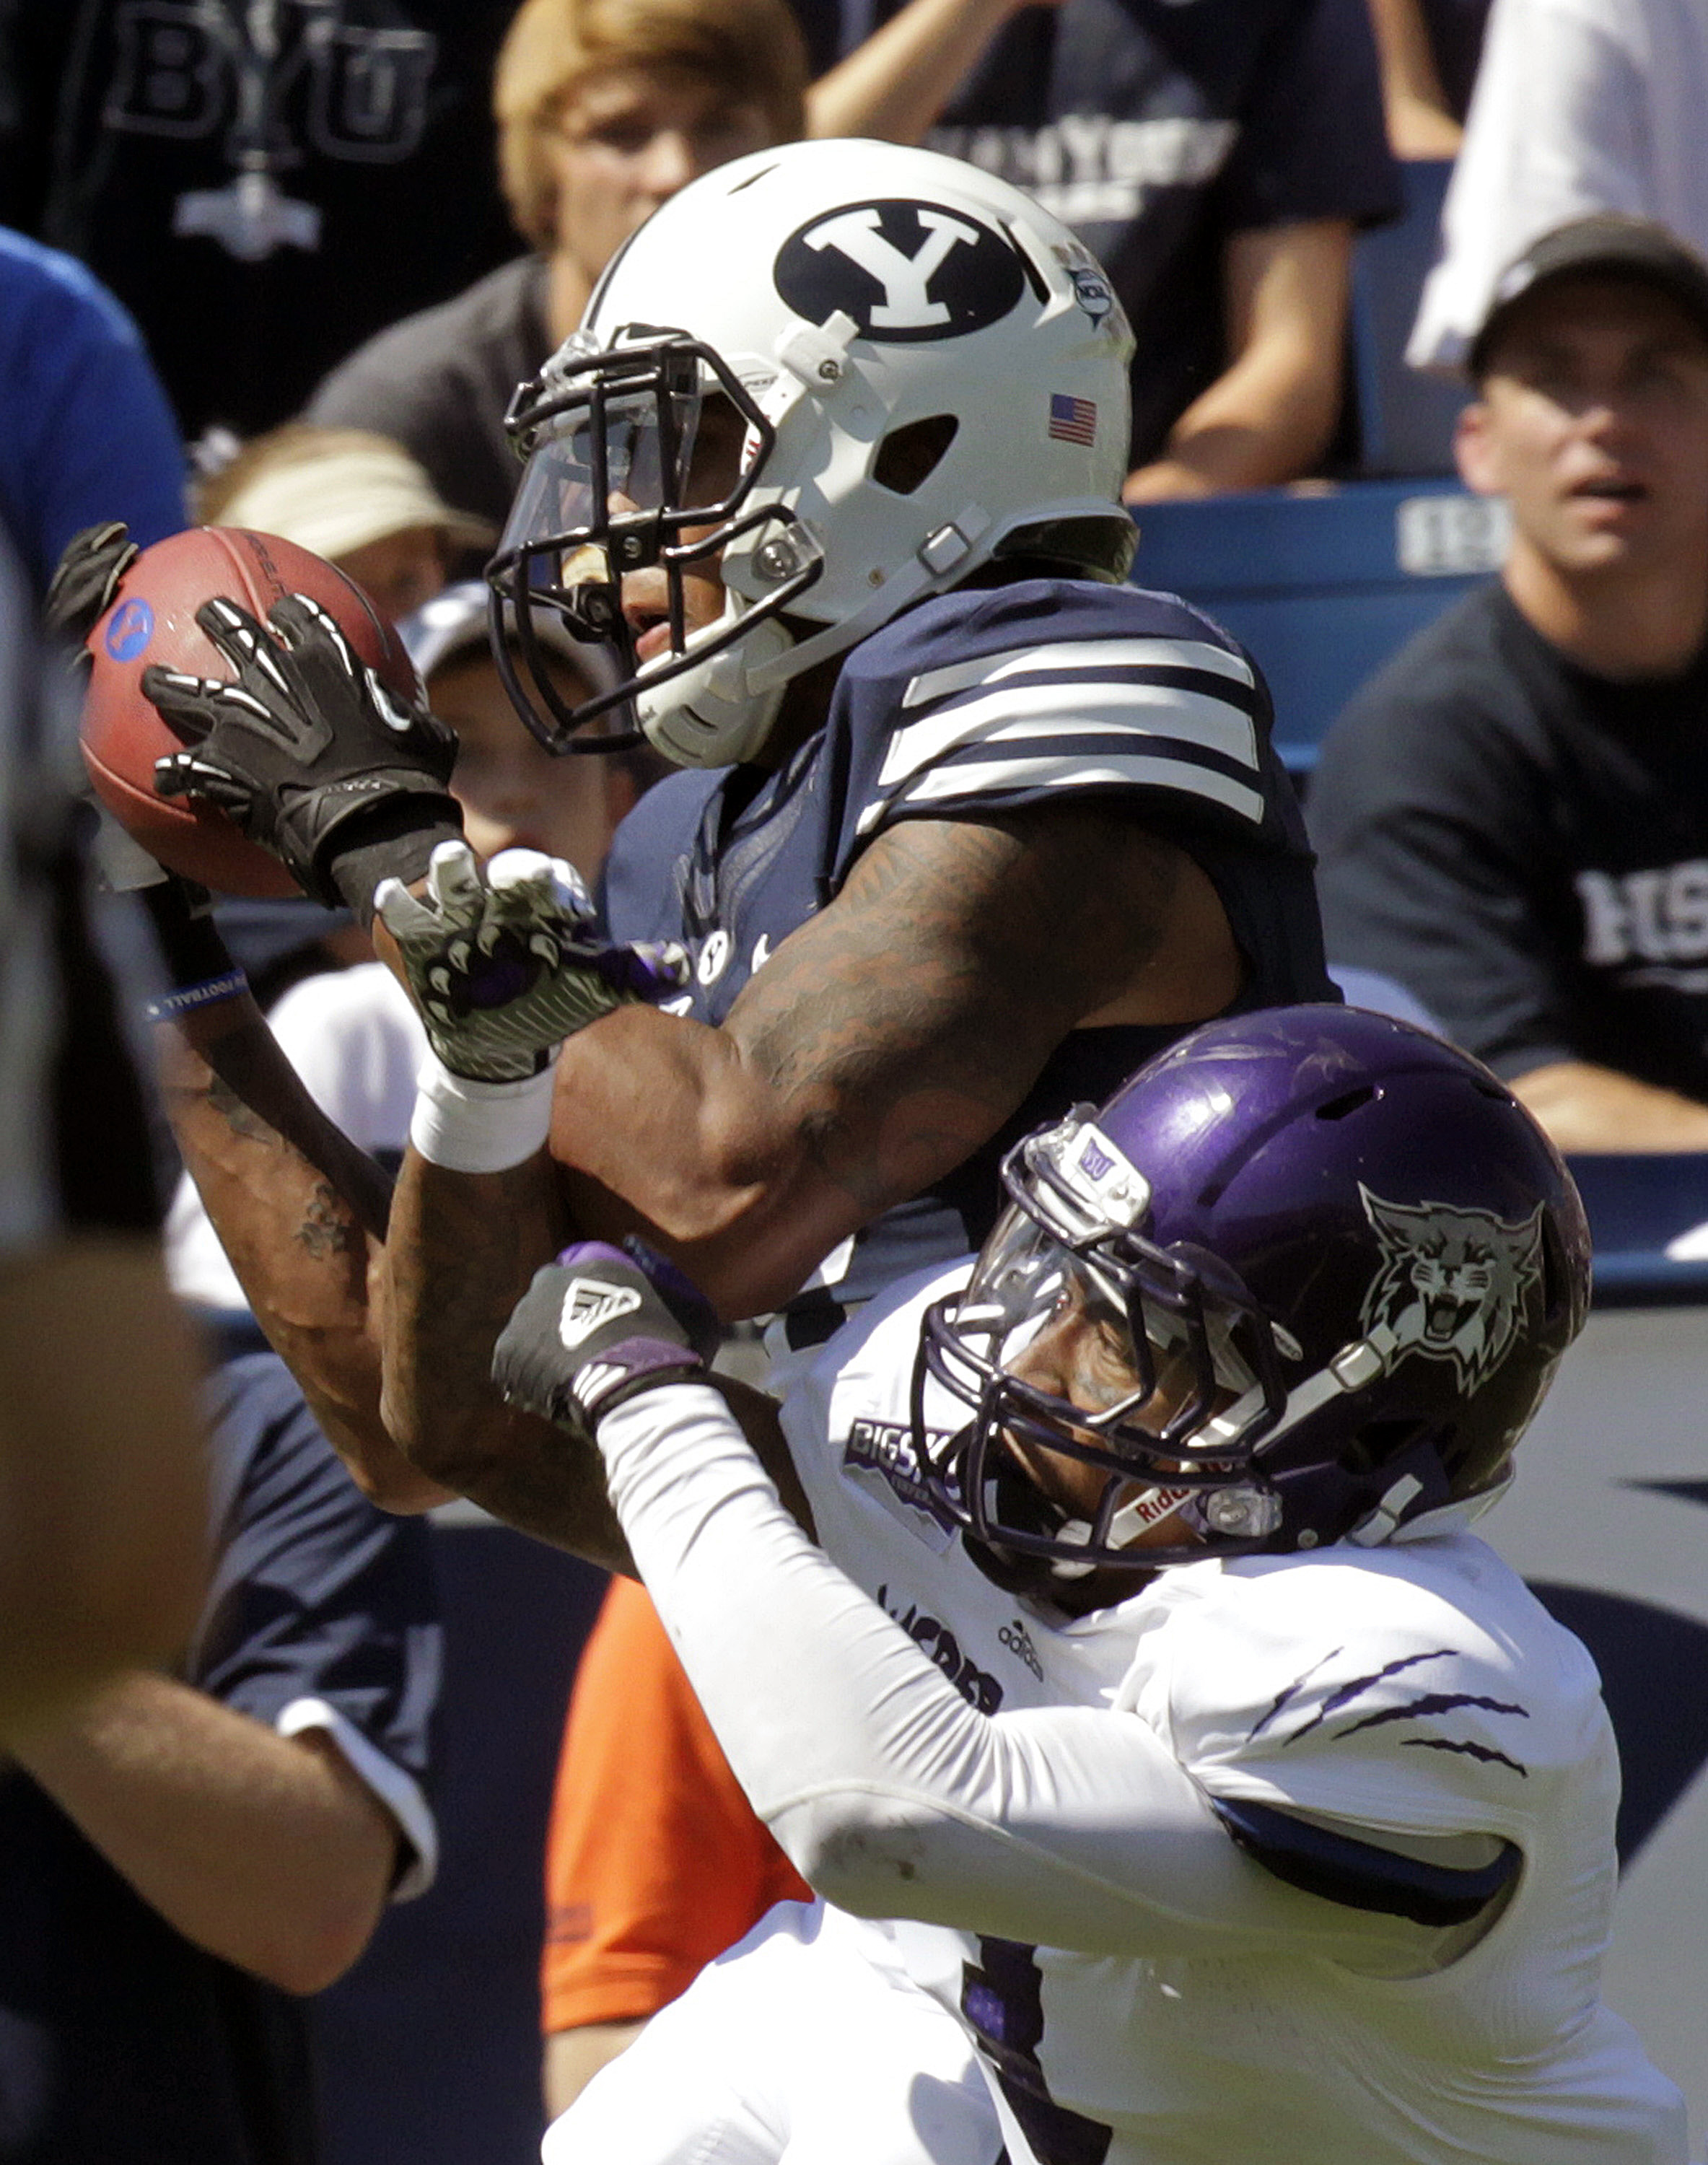 FILE - In this Sept. 8, 2012, file photo, Brigham Young wide receiver Cody Hoffman, top, catches a touchdown pass as then-Weber State cornerback Devin Pugh defends in the first quarter of an NCAA college football game, in Provo, Utah. Former Weber State c